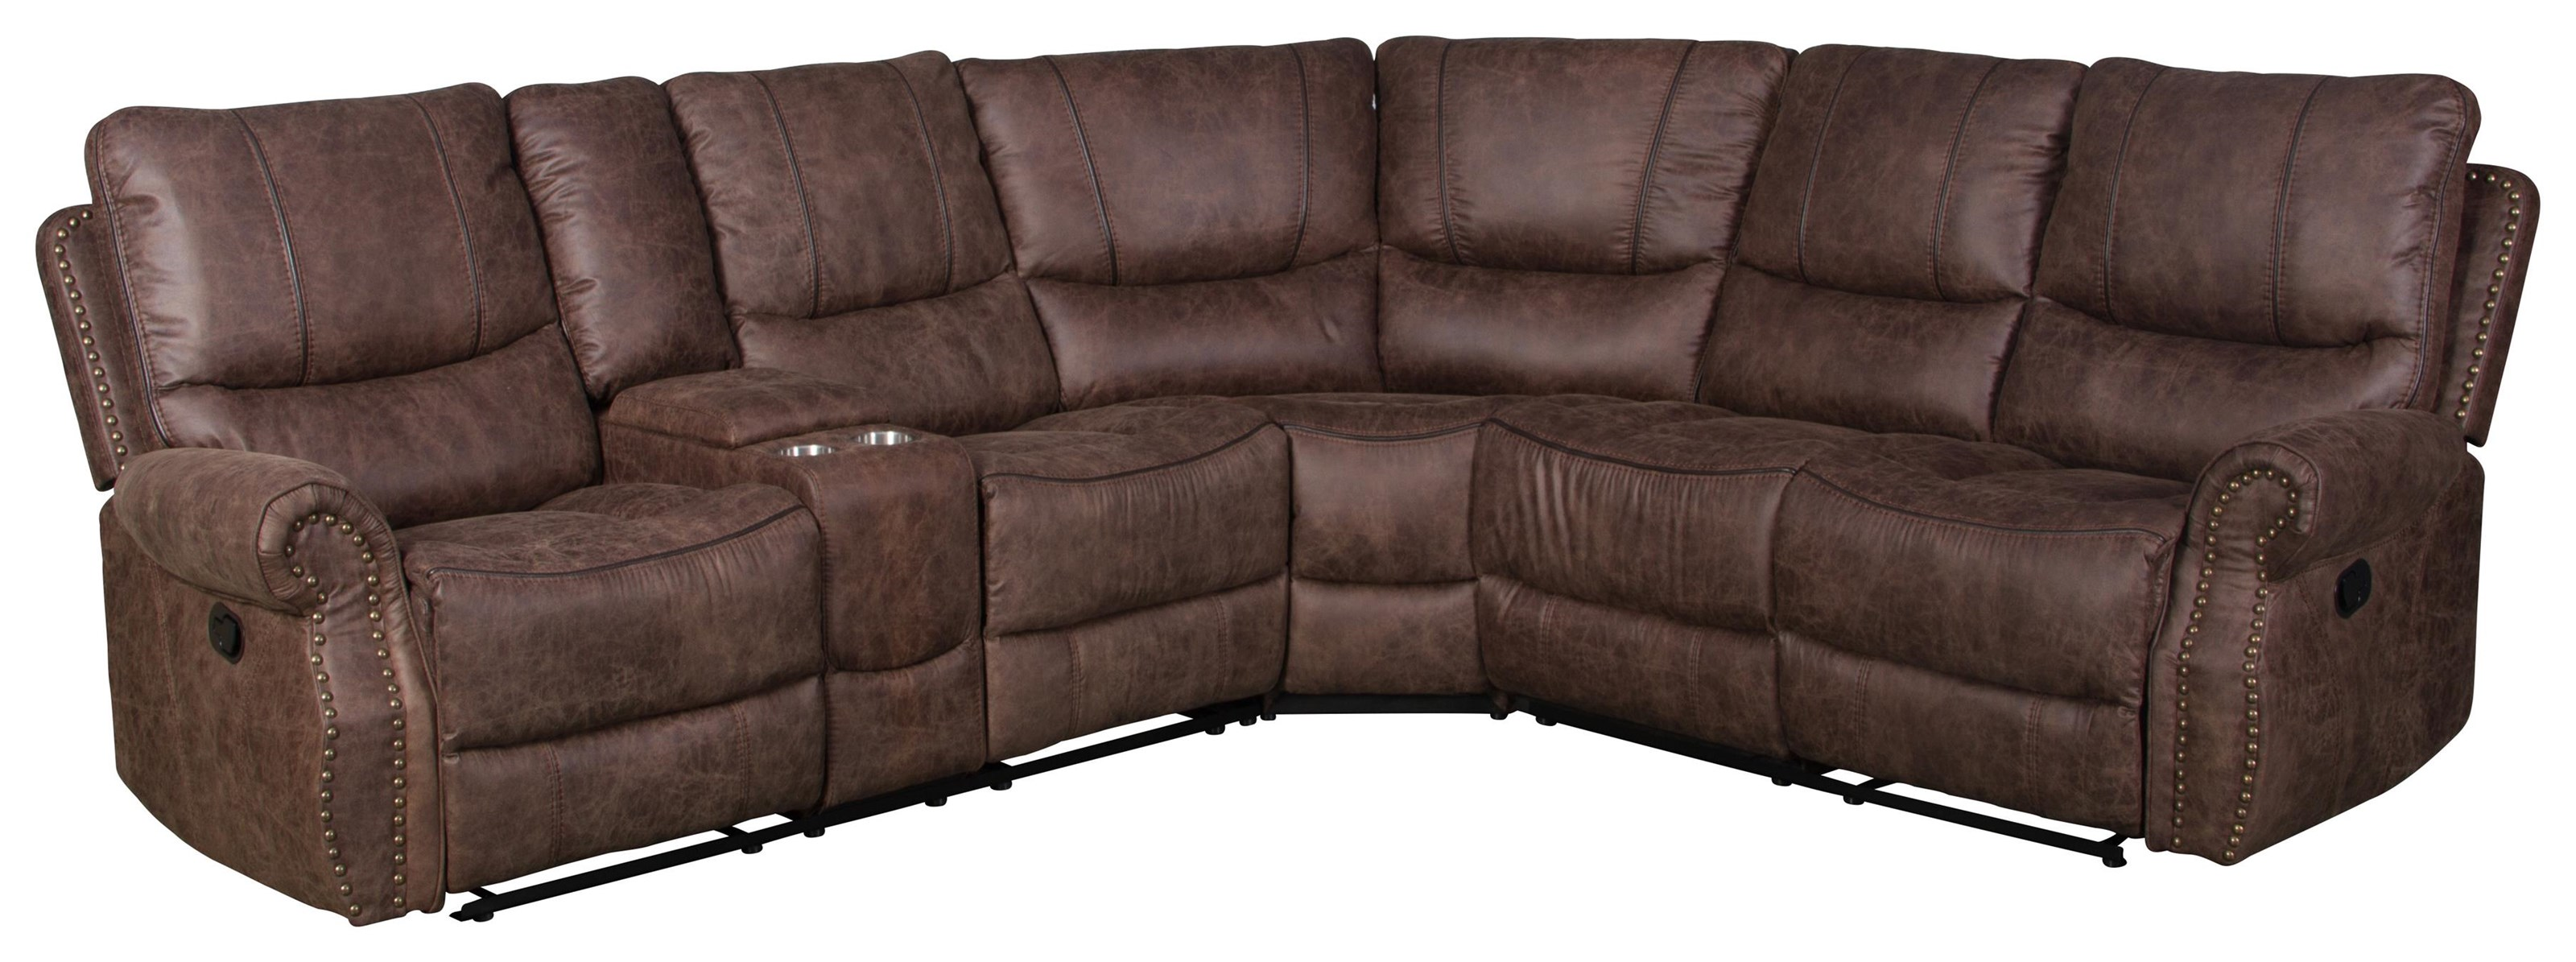 3 Piece Reclining Living Room Sectional